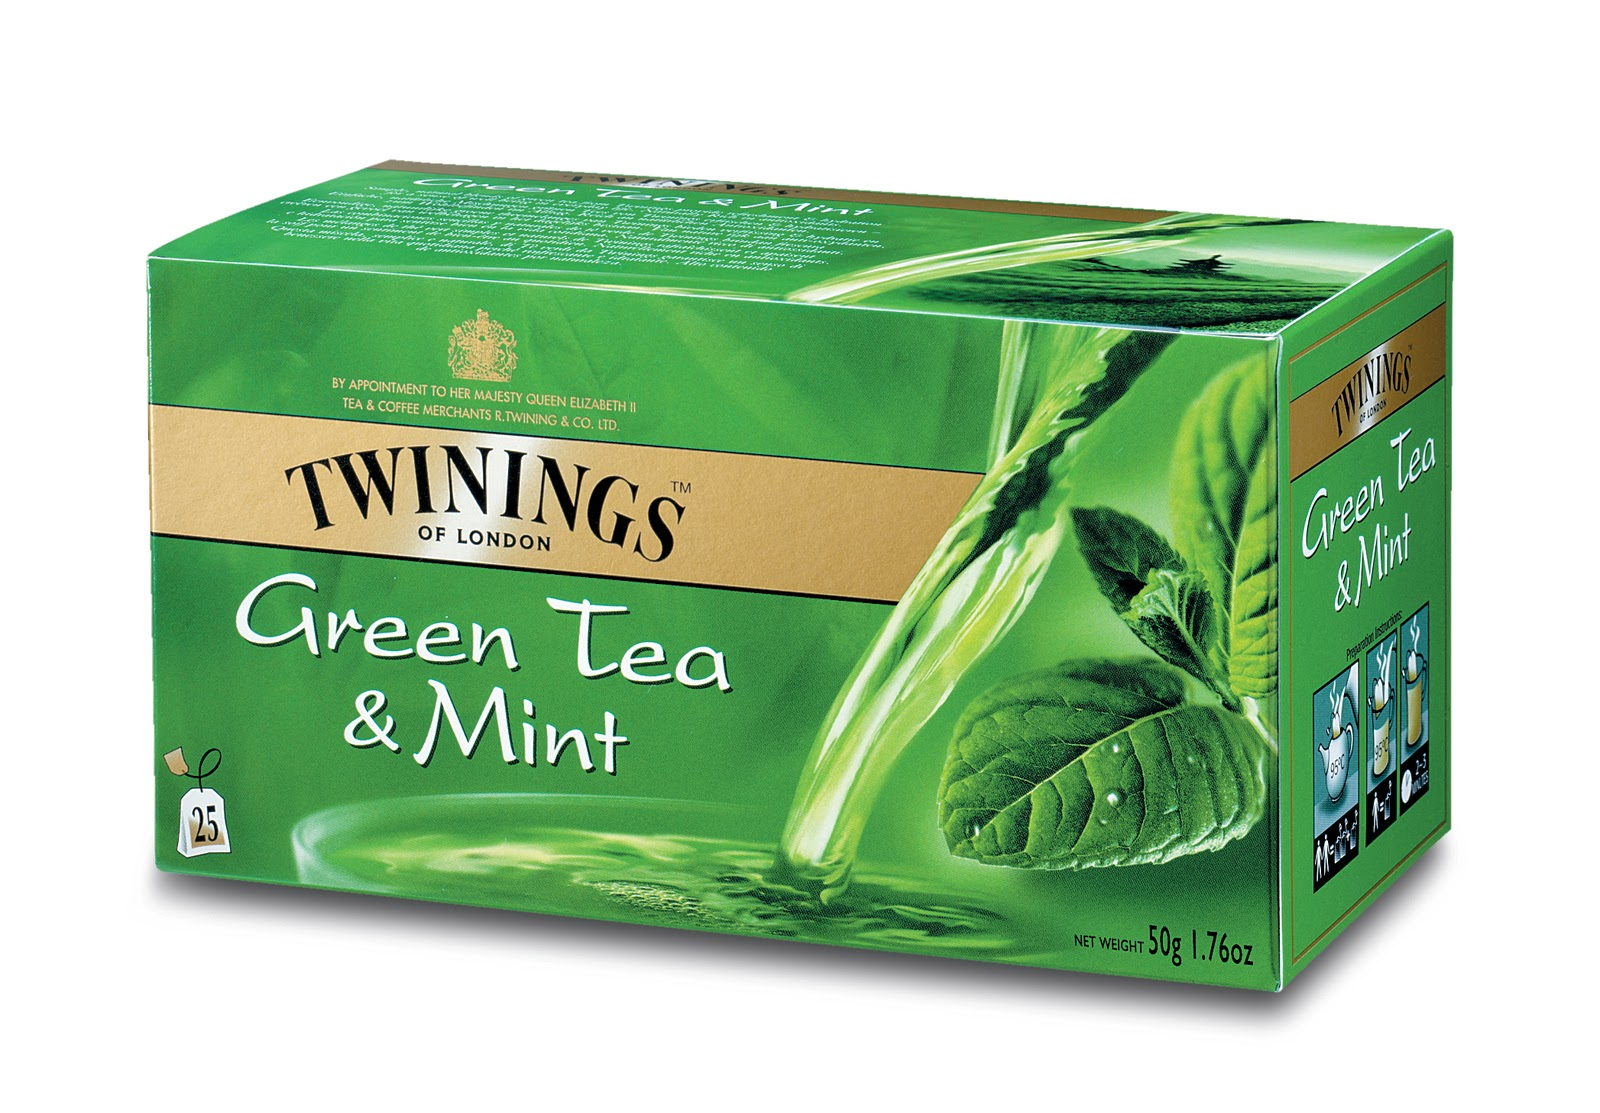 Opened in , the Twinings tea shop located at Strand is one of the narrowest shops in London! Stop in to enjoy the extensive selection of teas, learn more about the history of Twinings and find perfect gifts for those tea lovers back home.